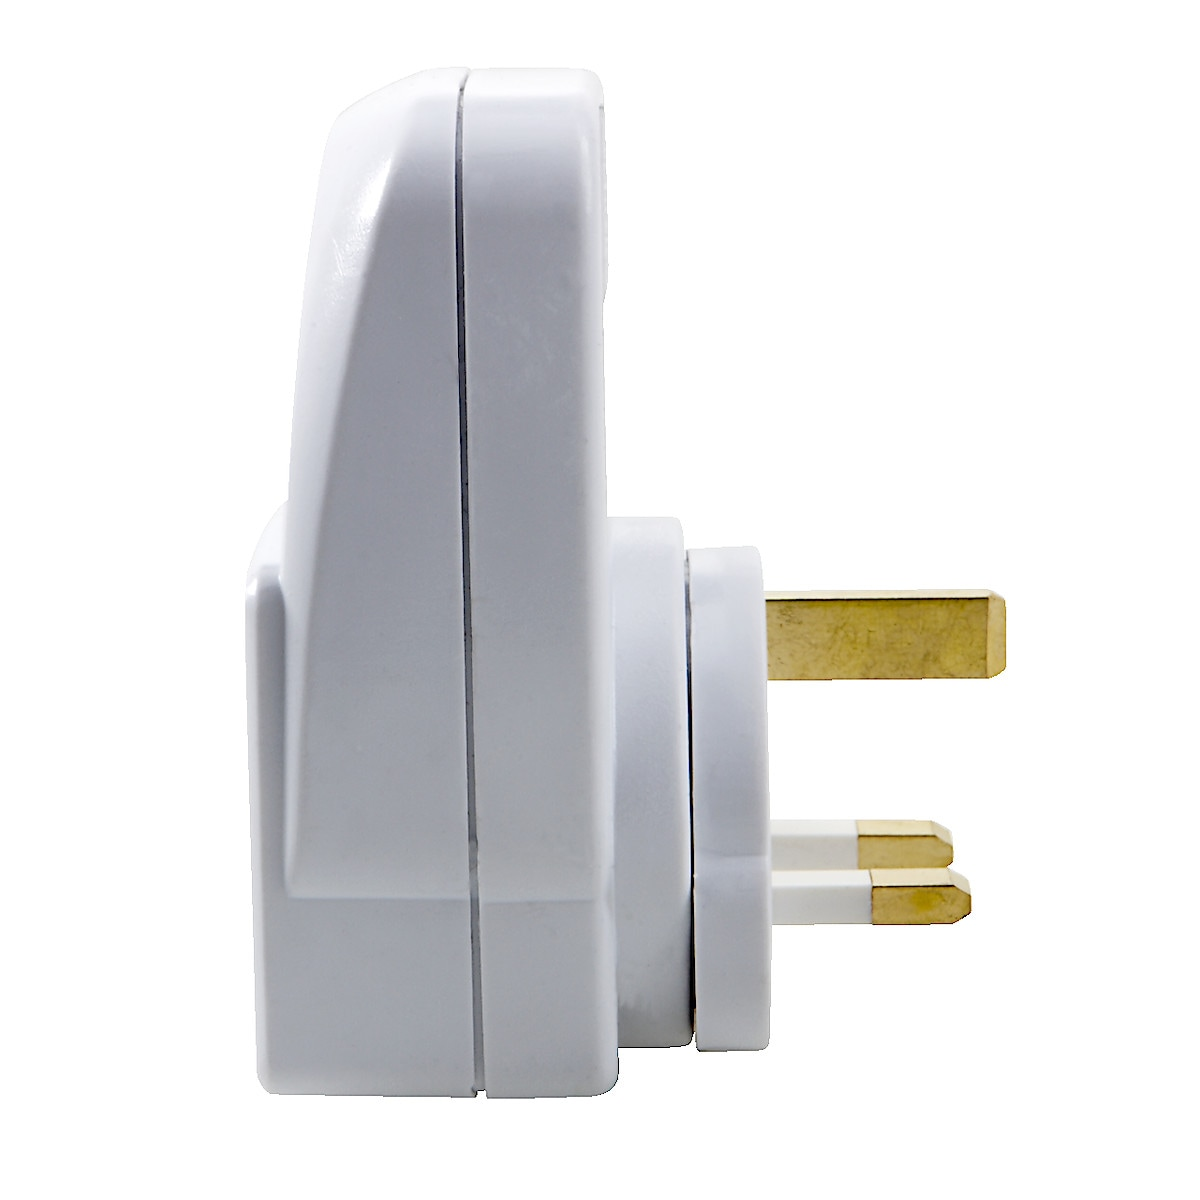 Remote Control Switch 3-pack